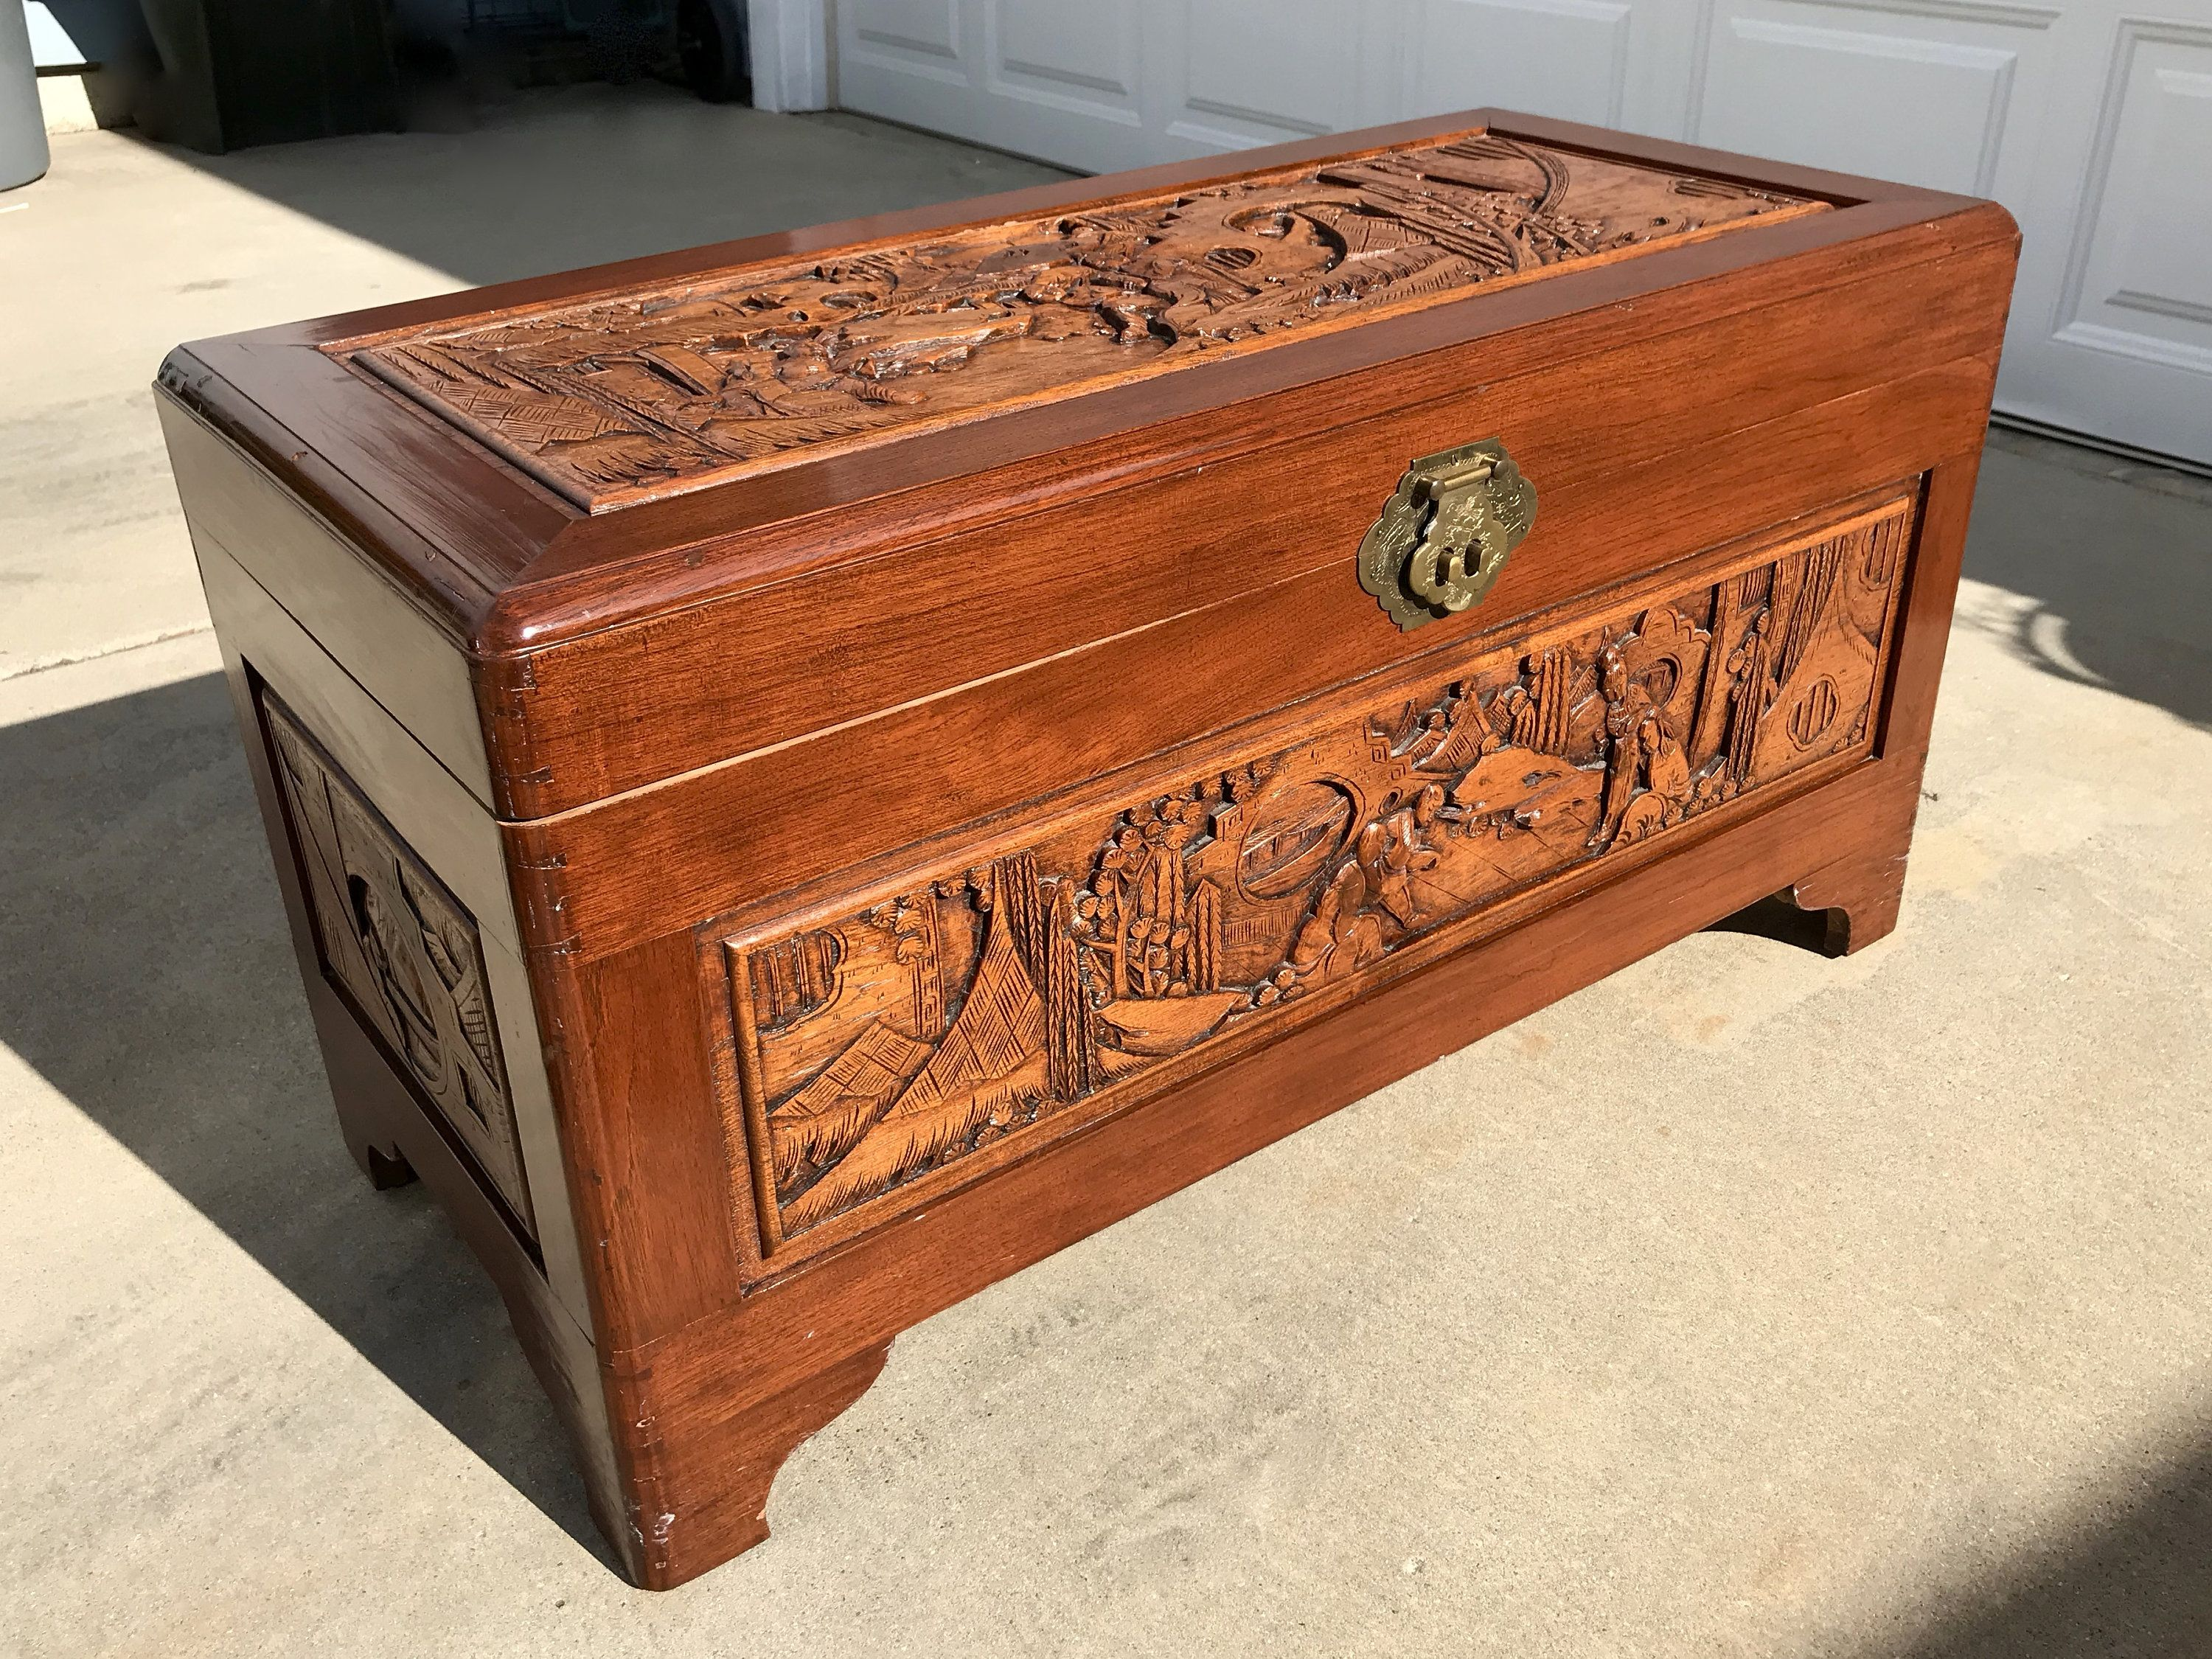 Chinese Carved Camphor Wood Chest 36x19x17 Asian Wood Blanket Chest Antique Hand Carved Camphor Woo Wood Carving Faces Wood Carving Patterns Wood Storage